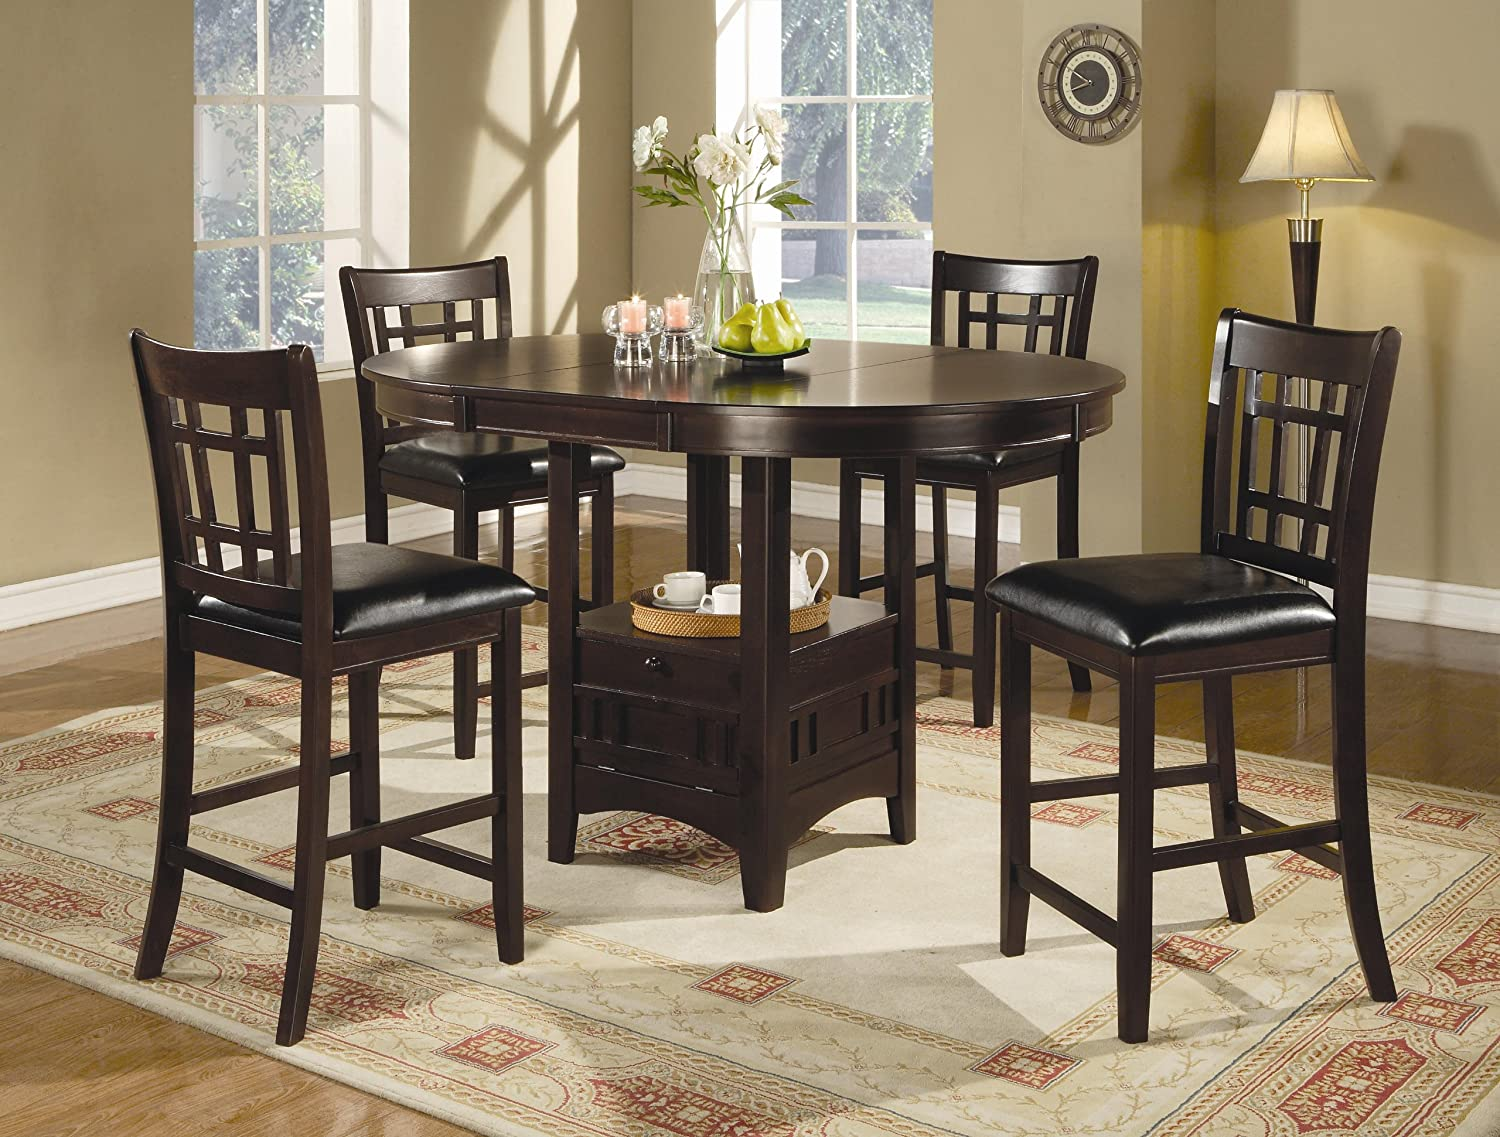 Furniture Coaster Home Furnishings Lavon 5 Piece Storage Counter